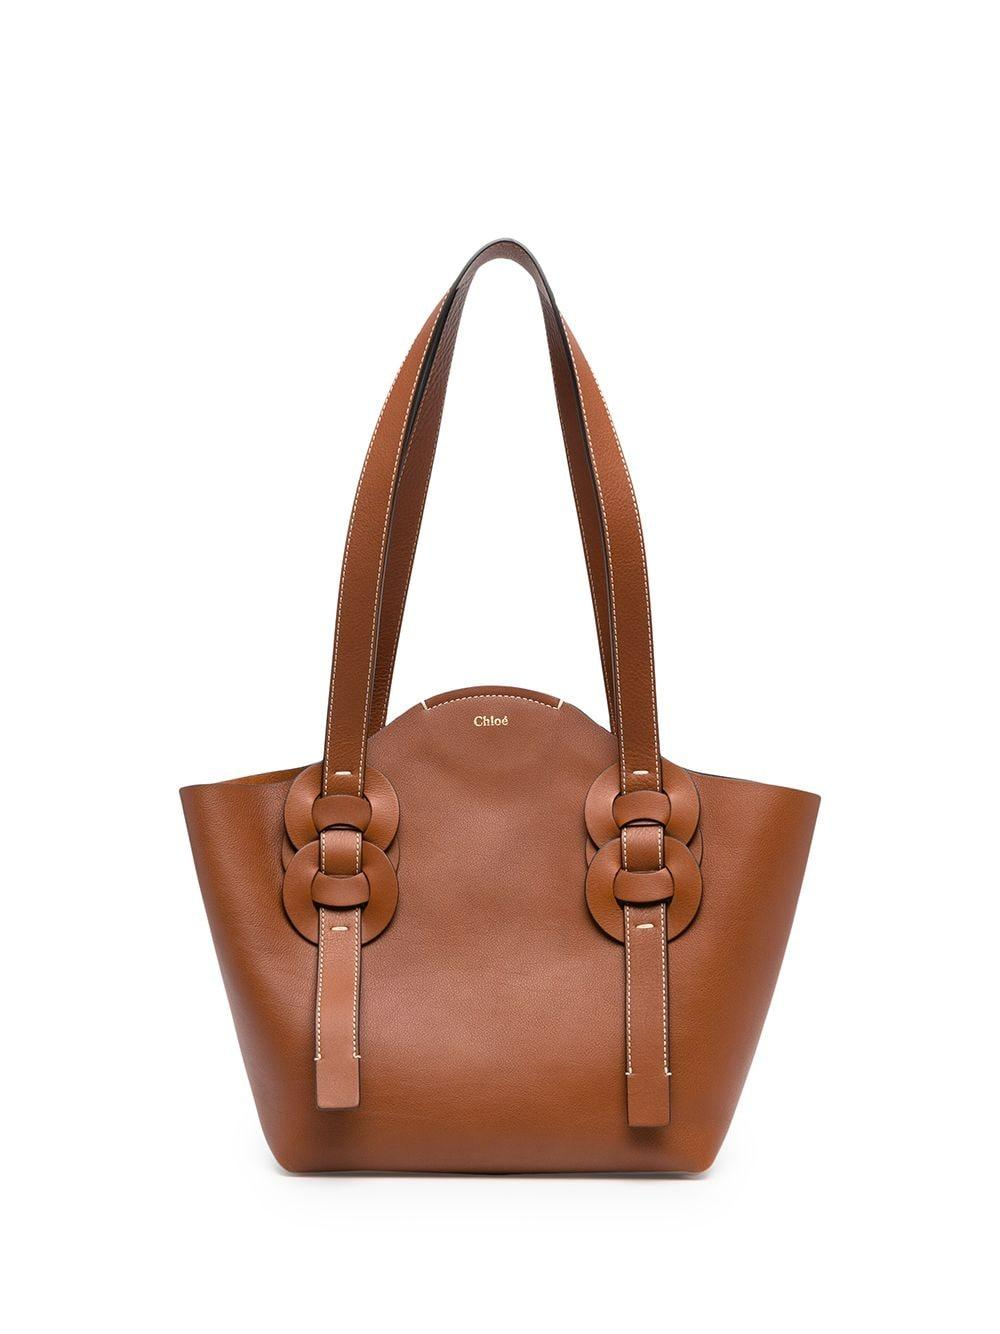 Darryl Small Tote Bag